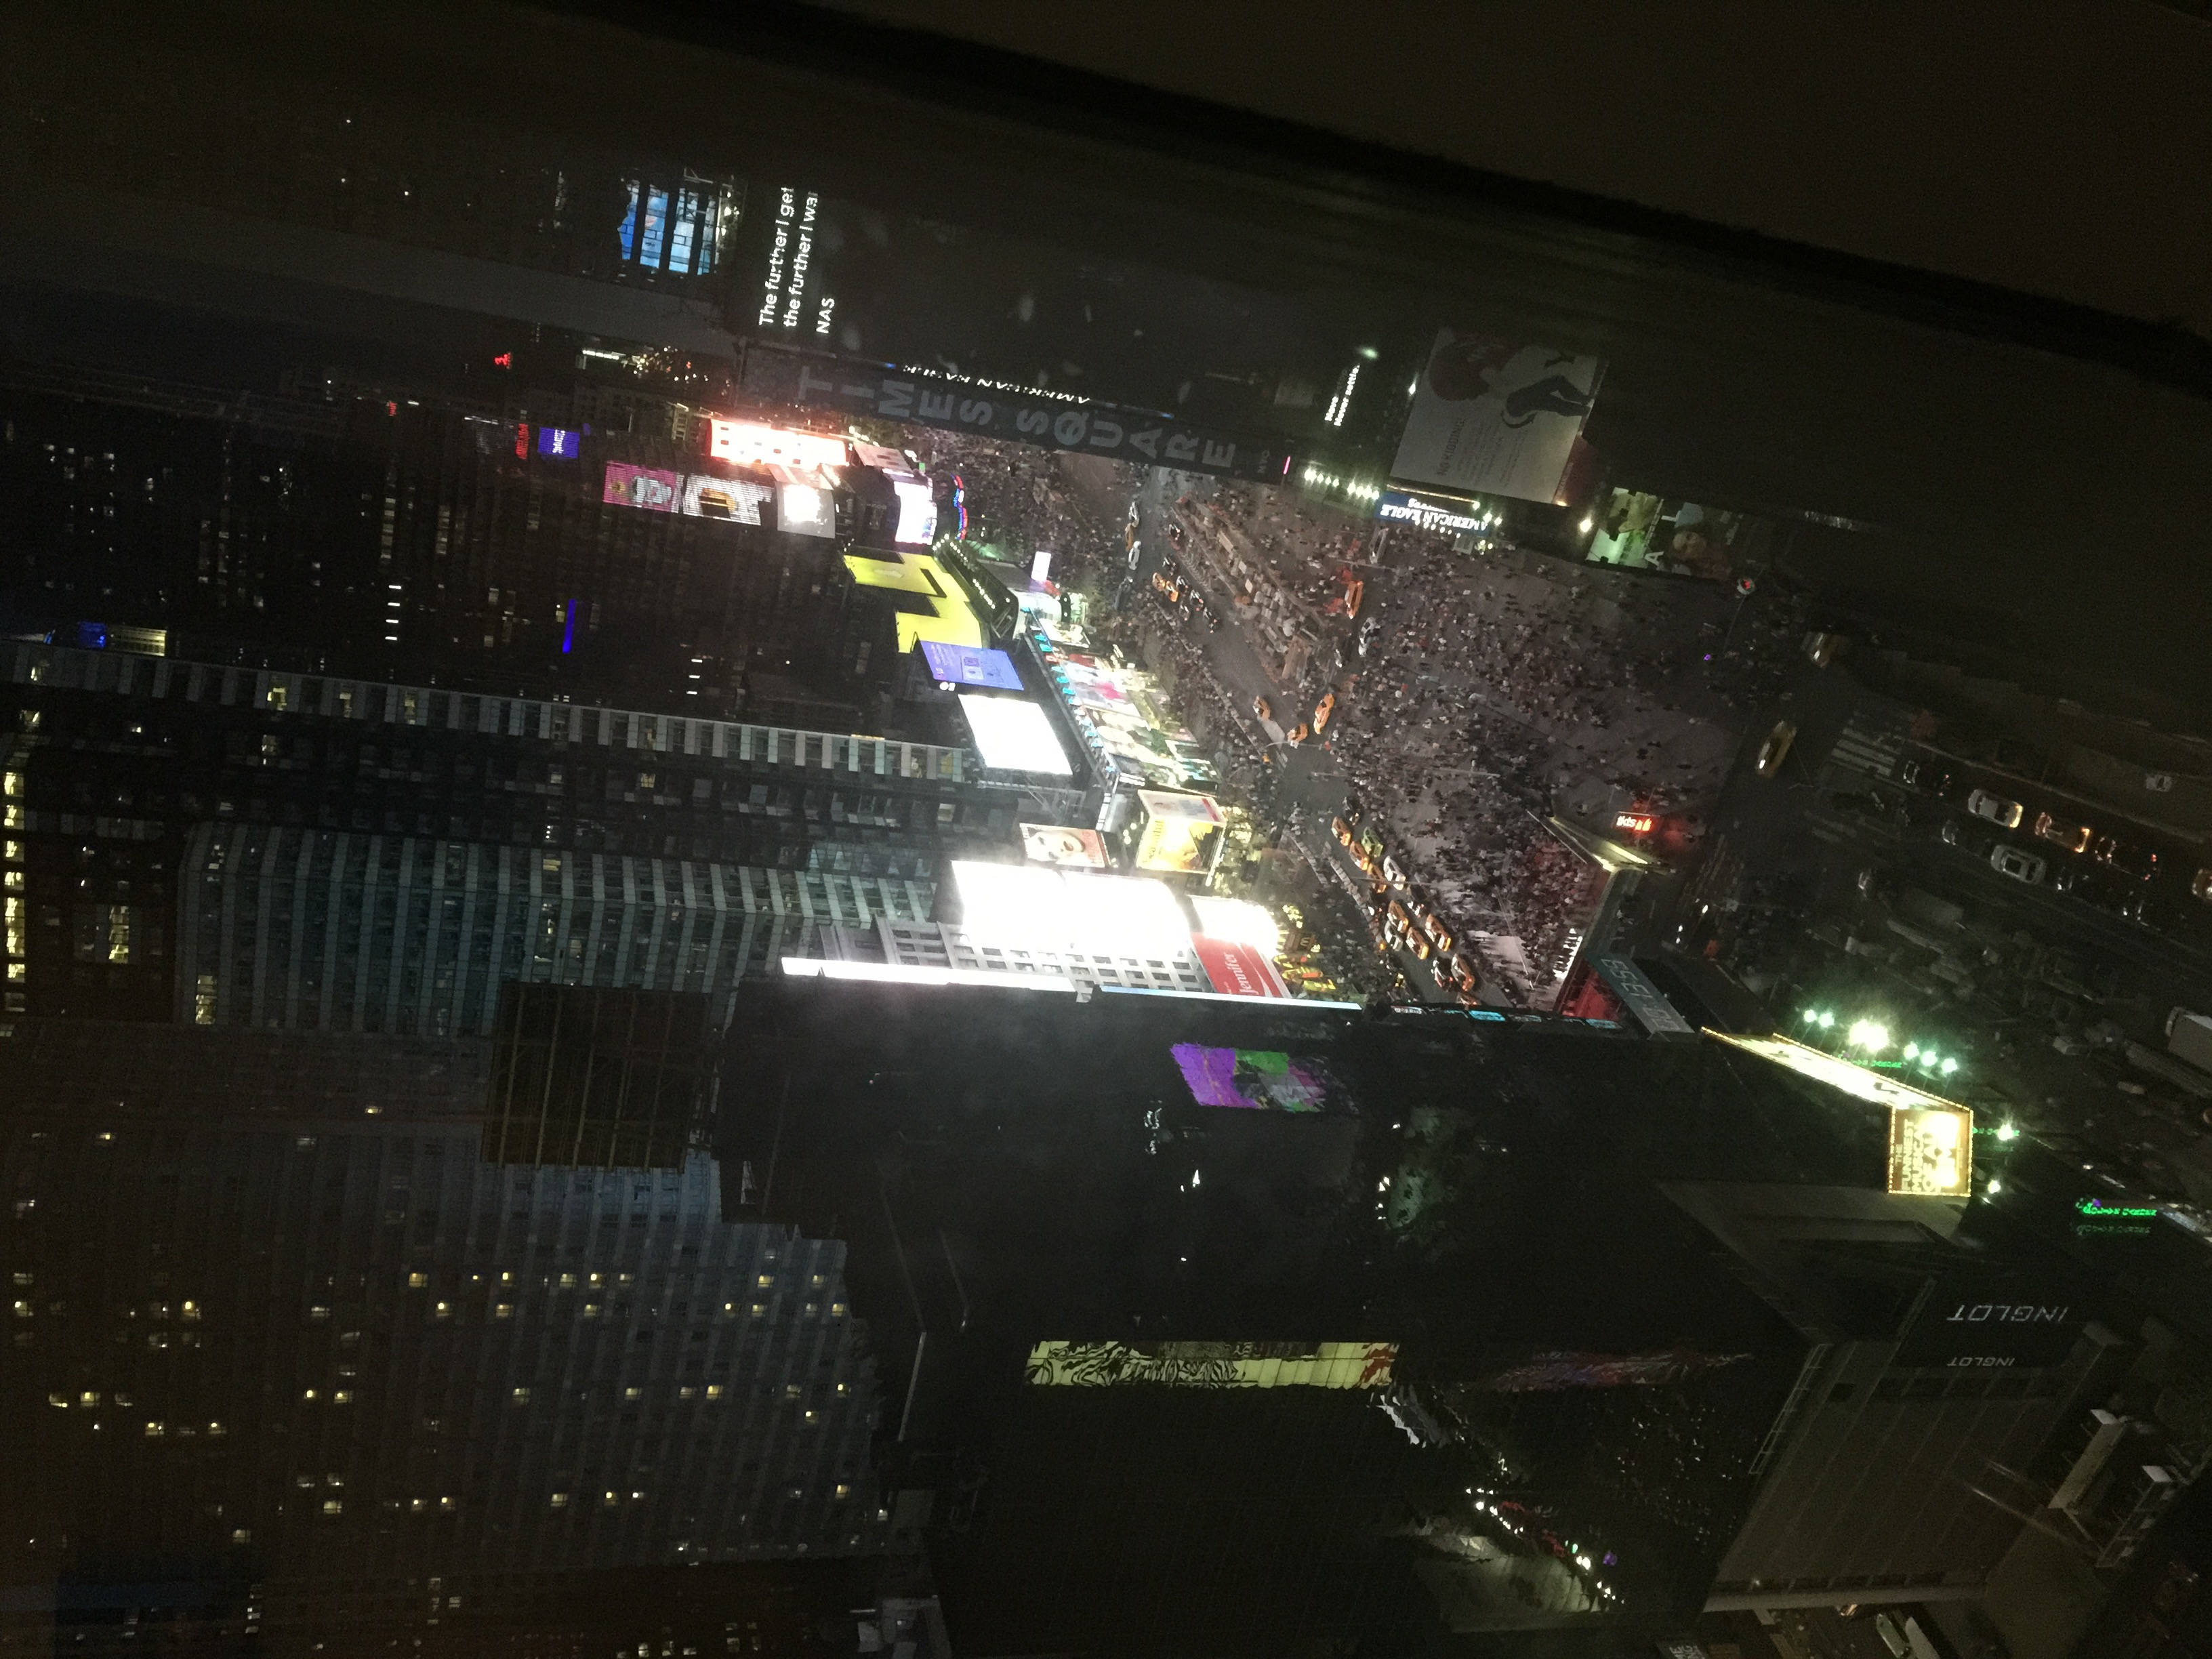 Olivia captured this great shot of Times Square from a high vantage point.